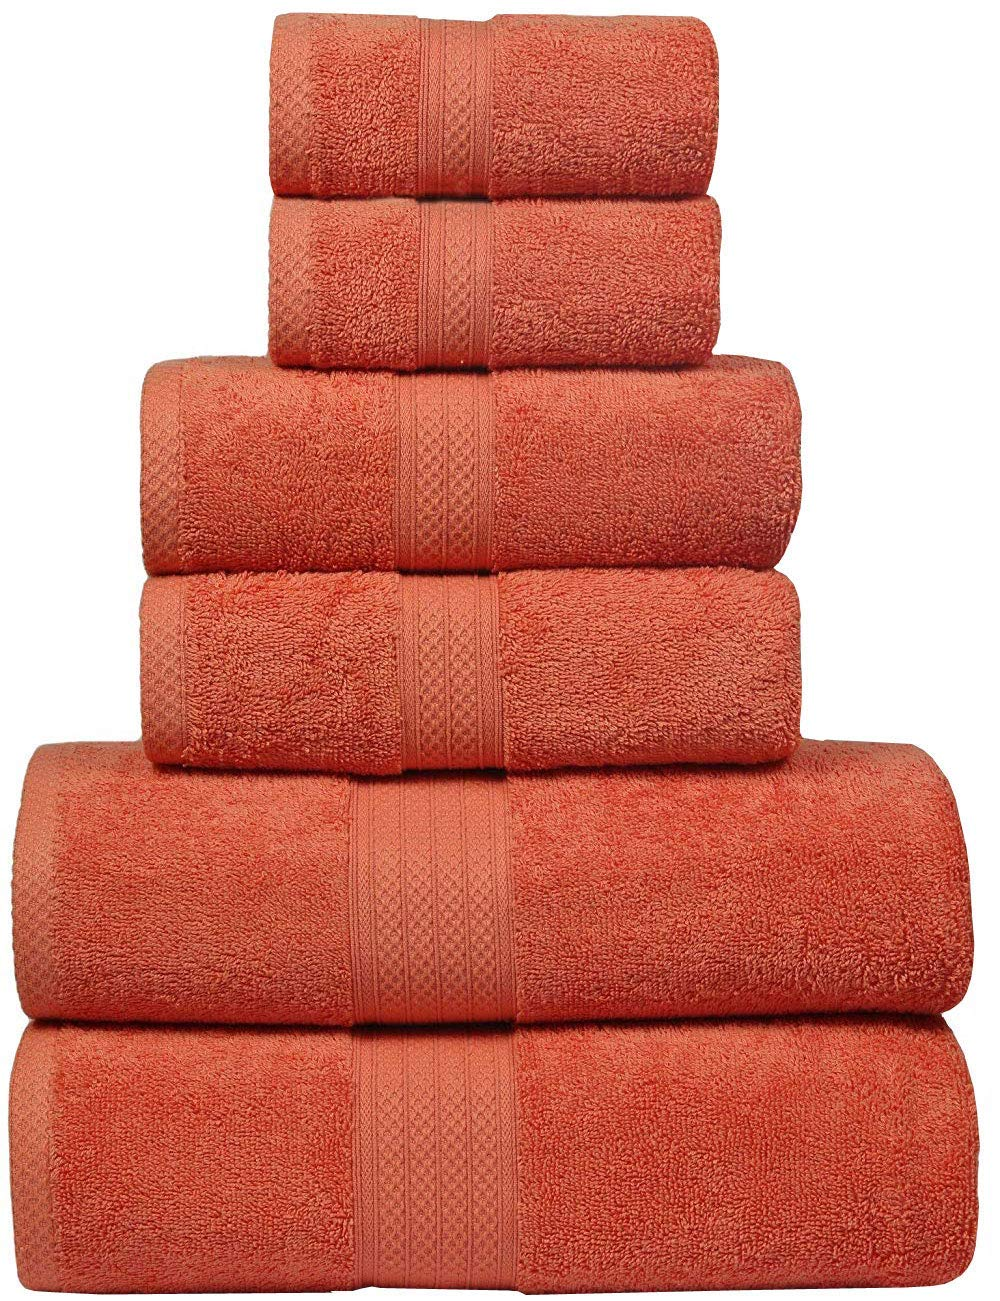 Bath Towels in 100% Ring Spun Combed Cotton With Luxurious & Ultra Soft,Highly Absorbent,Bathroom Towels,Bath Towel Set,Bath Towel Cotton,Bath towel- 27x54-Orange (Set of 6 ,Bath-2,Hand-2,Wash-2)